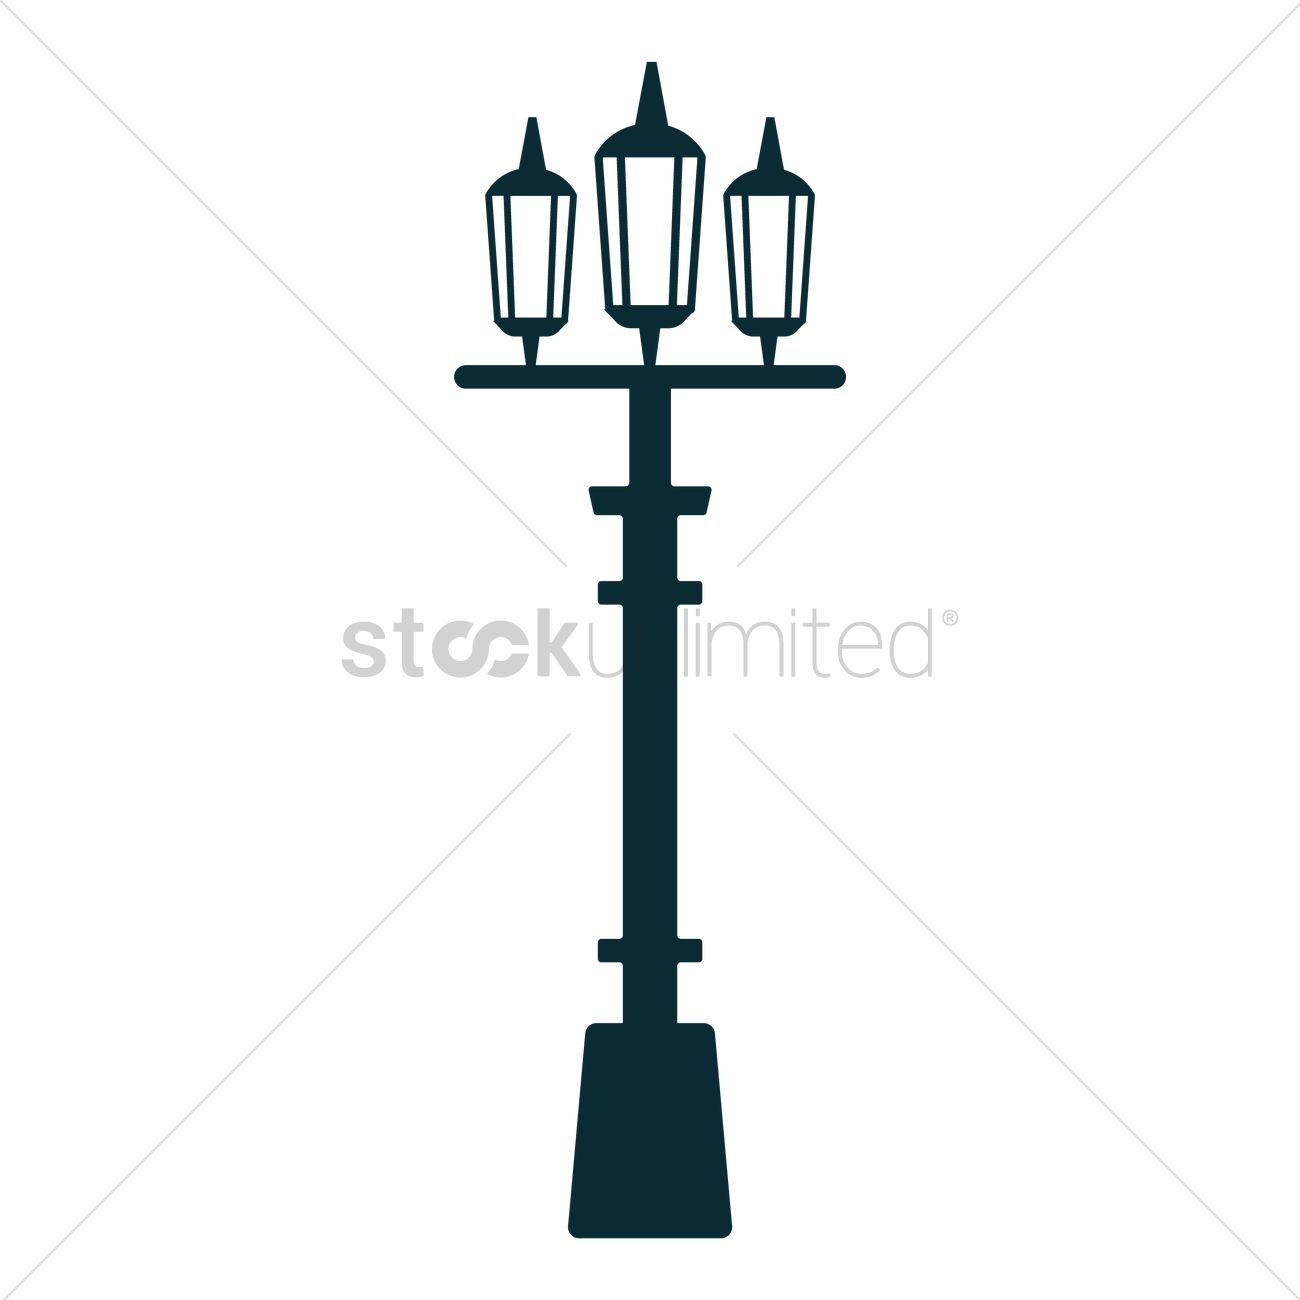 London street lamp Vector Image - 1576602 | StockUnlimited for Street Lamp Post Vector  155fiz